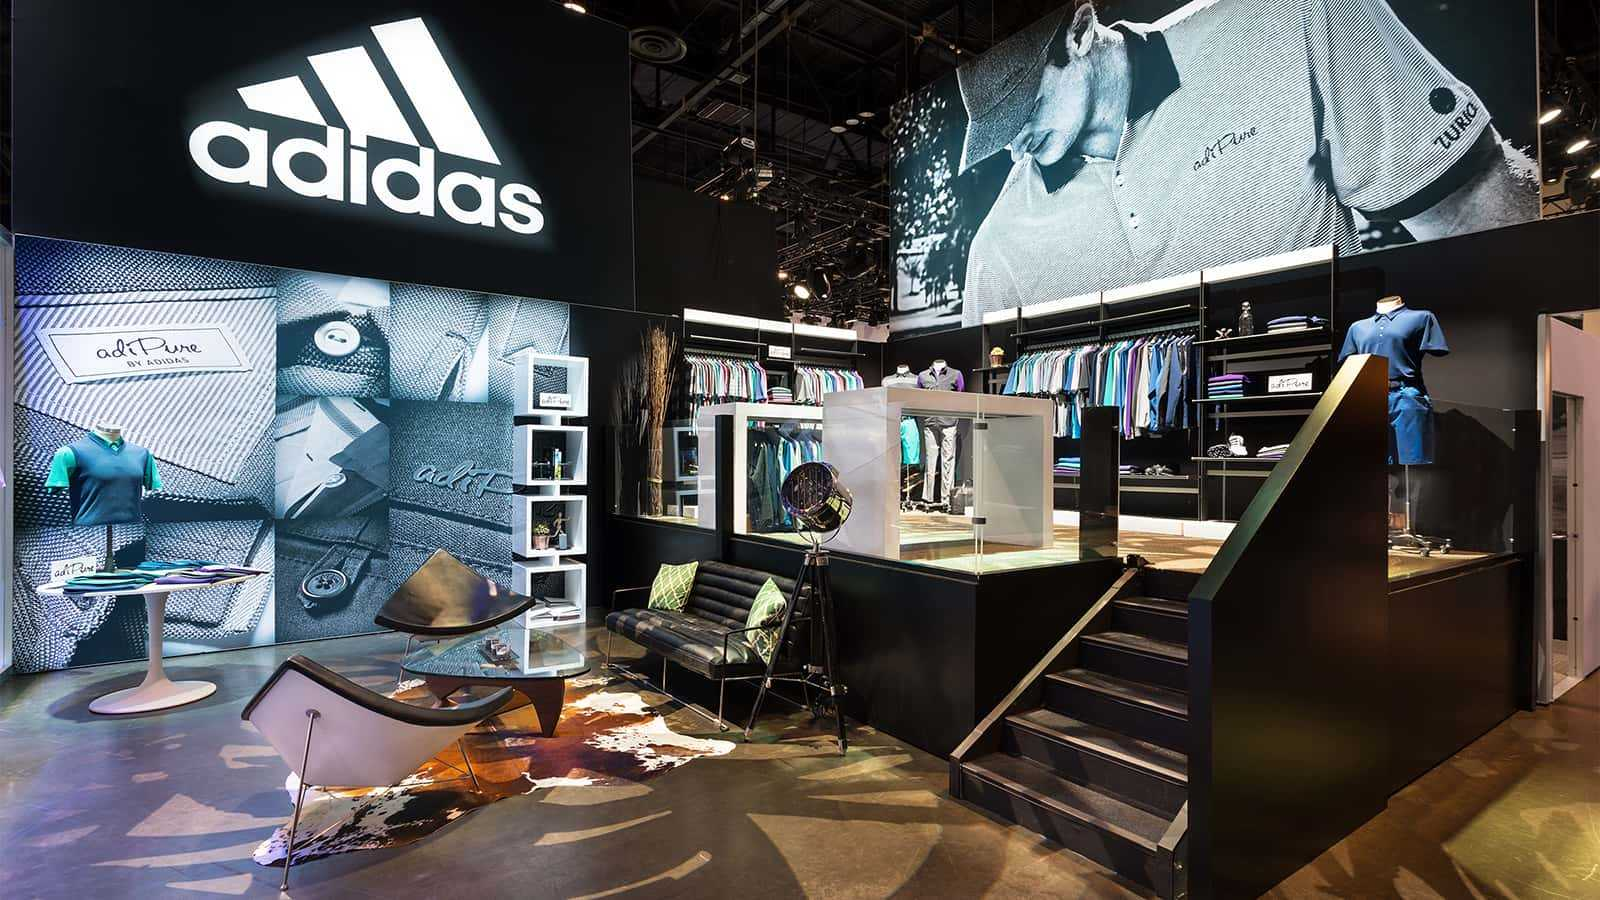 Retail racks and lounge areas the adidas Golf PGA Merchandise Show 2017 experience.